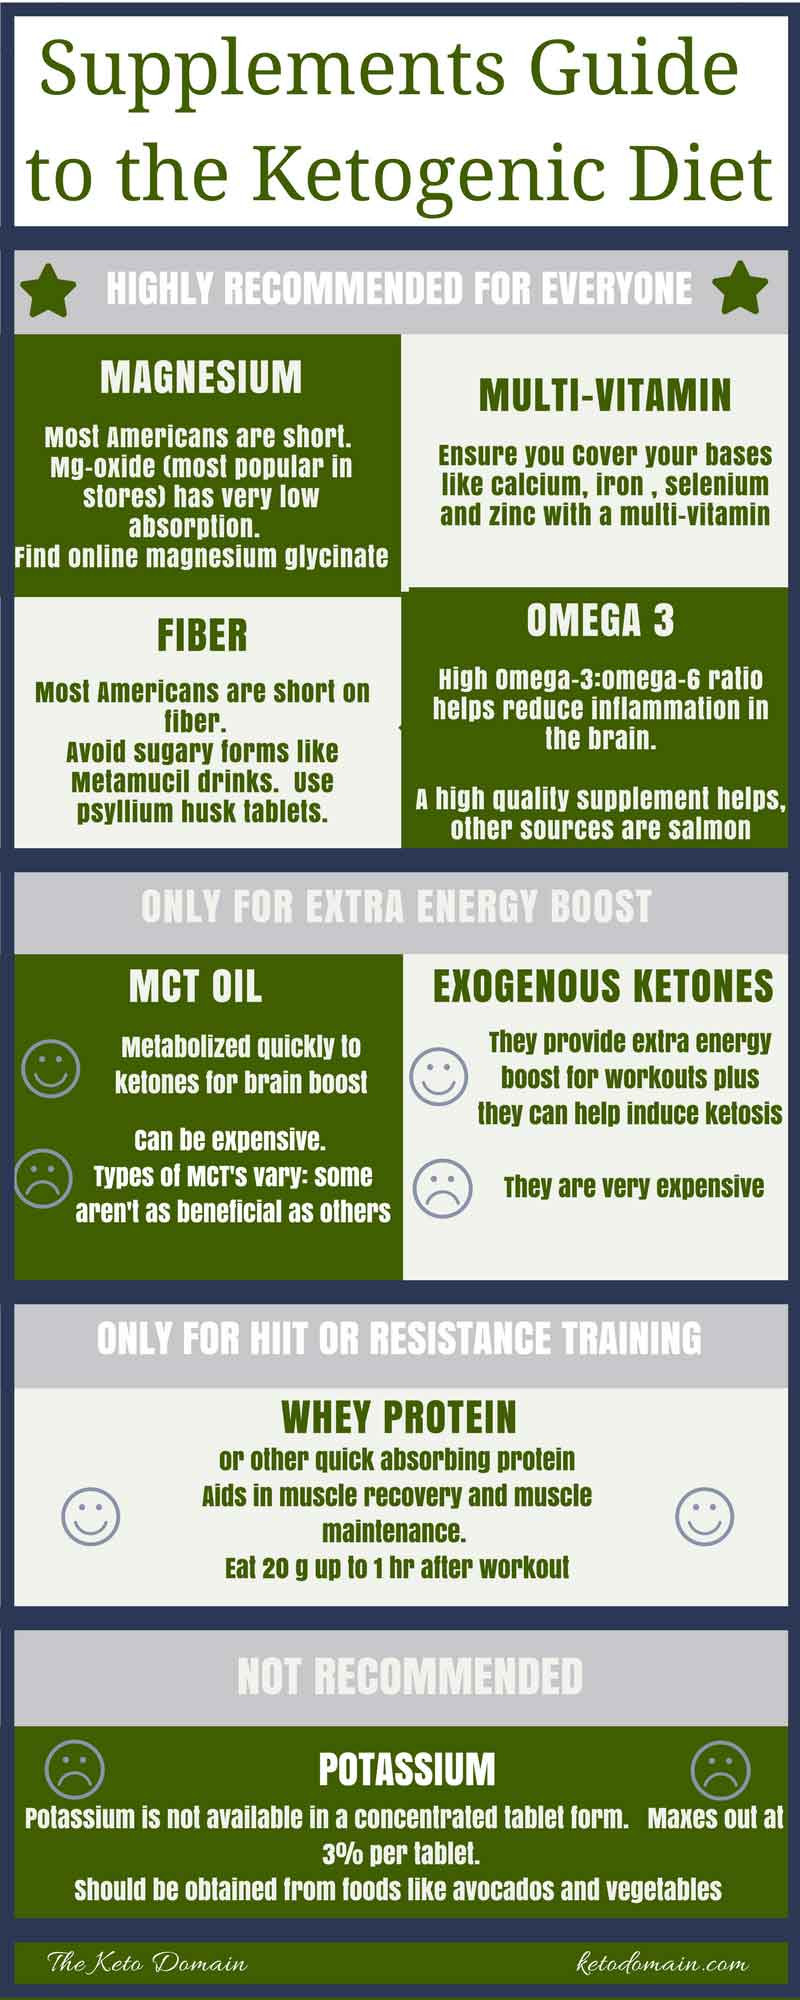 How To Keto Diet For Beginners  Beginners Guide Supplements for the Keto Diet